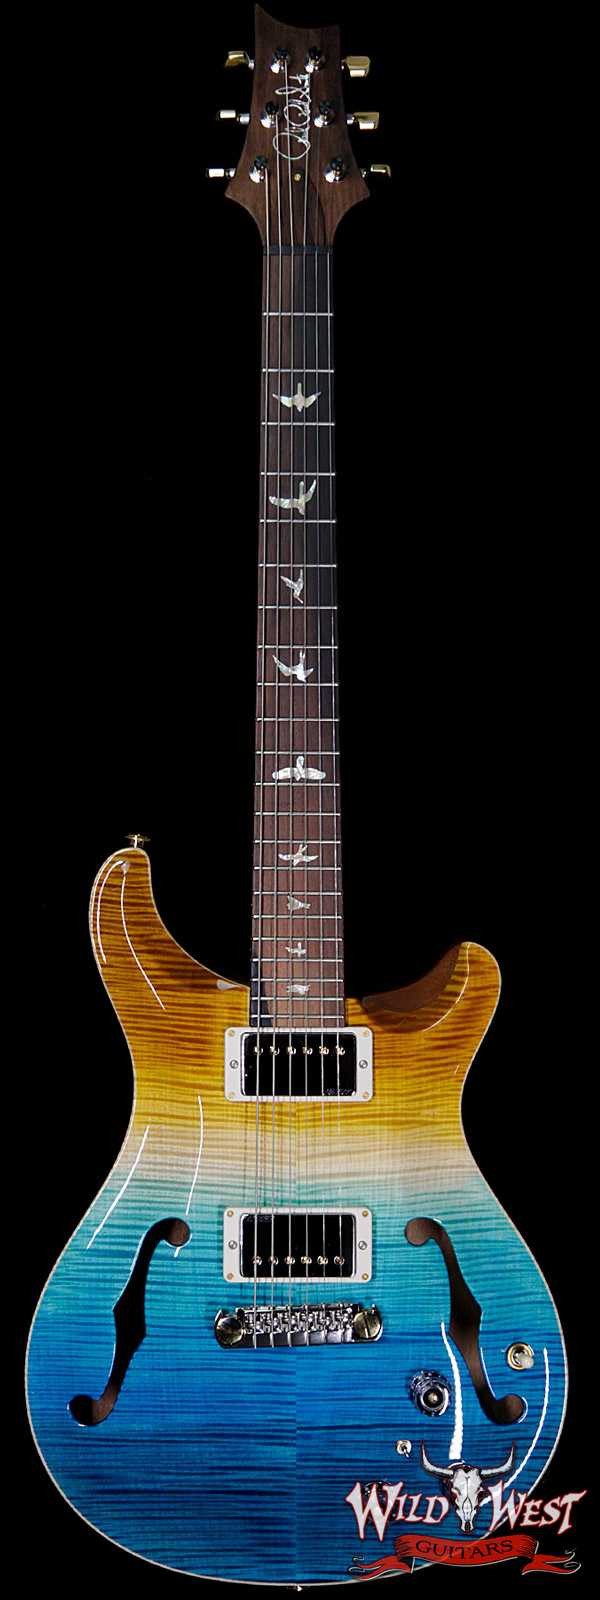 PRS Wild West Guitars 20th Anniversary Limited Run # 4 of 40 Wood Library Artist Package Hollowbody I Piezo HB1 Beach Cross Fade(Private Stock Color)